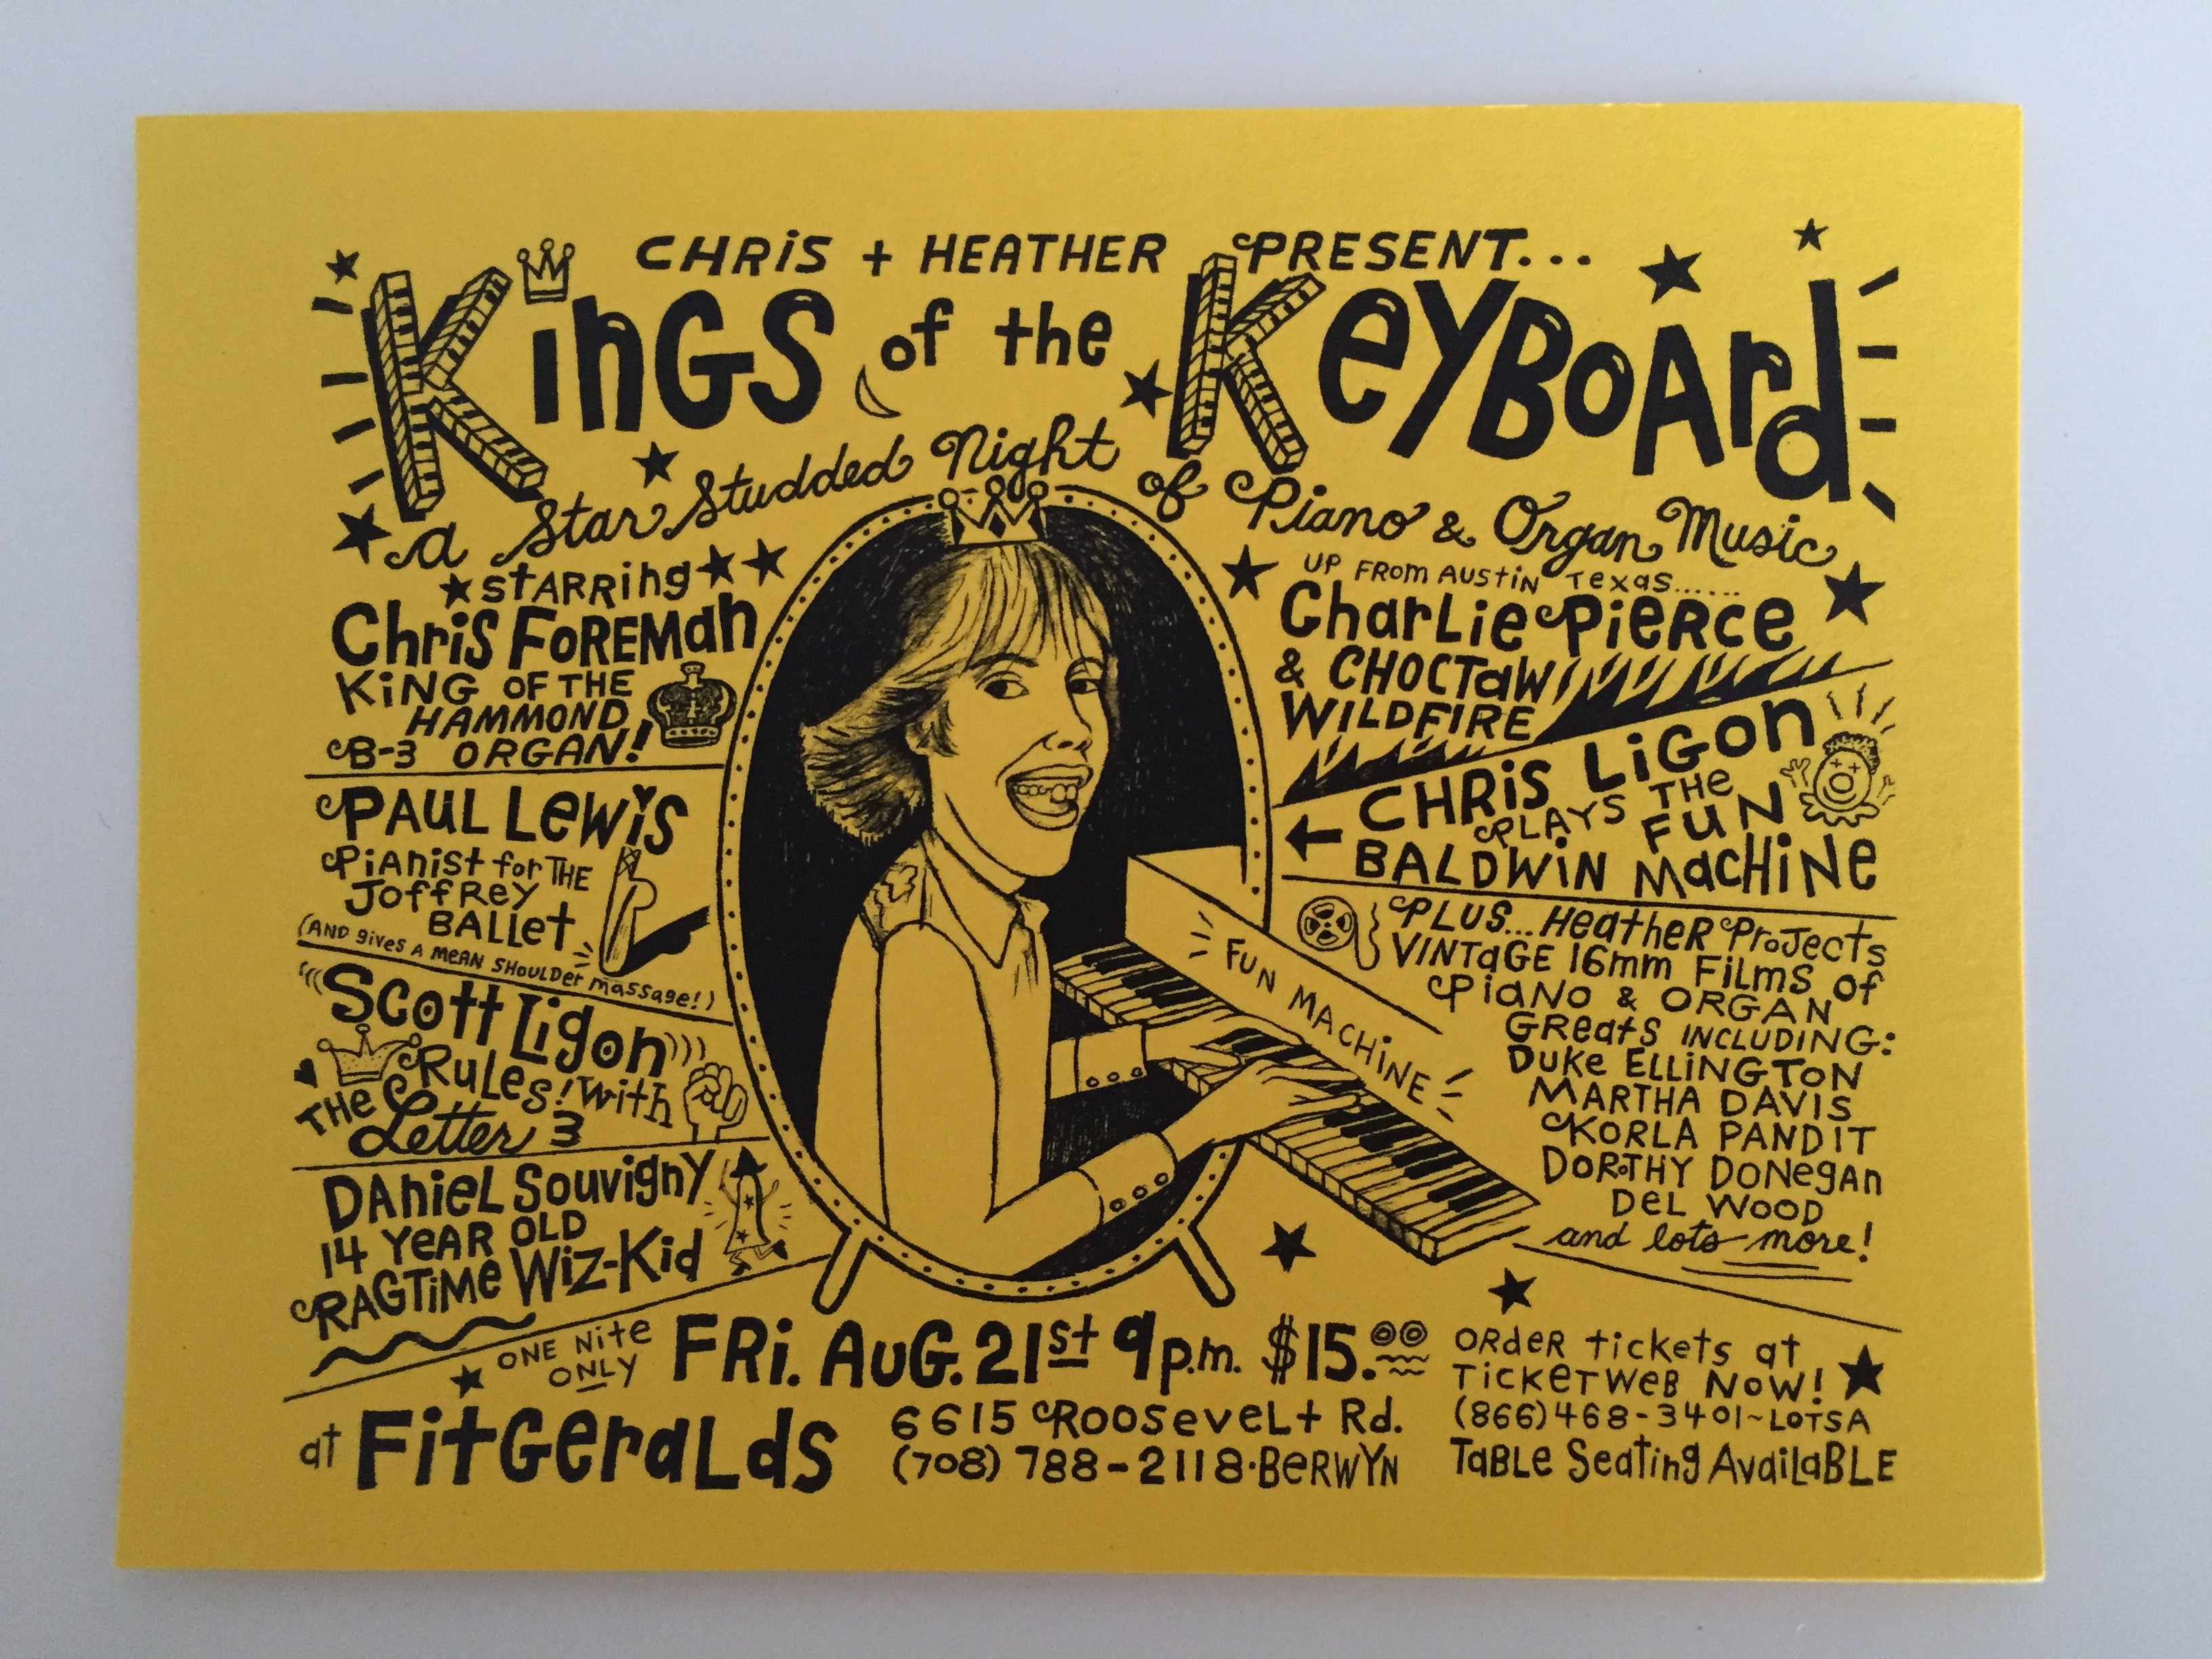 Kings of the Keyboard, FitzGeralds night club, Heather McAdams artwork